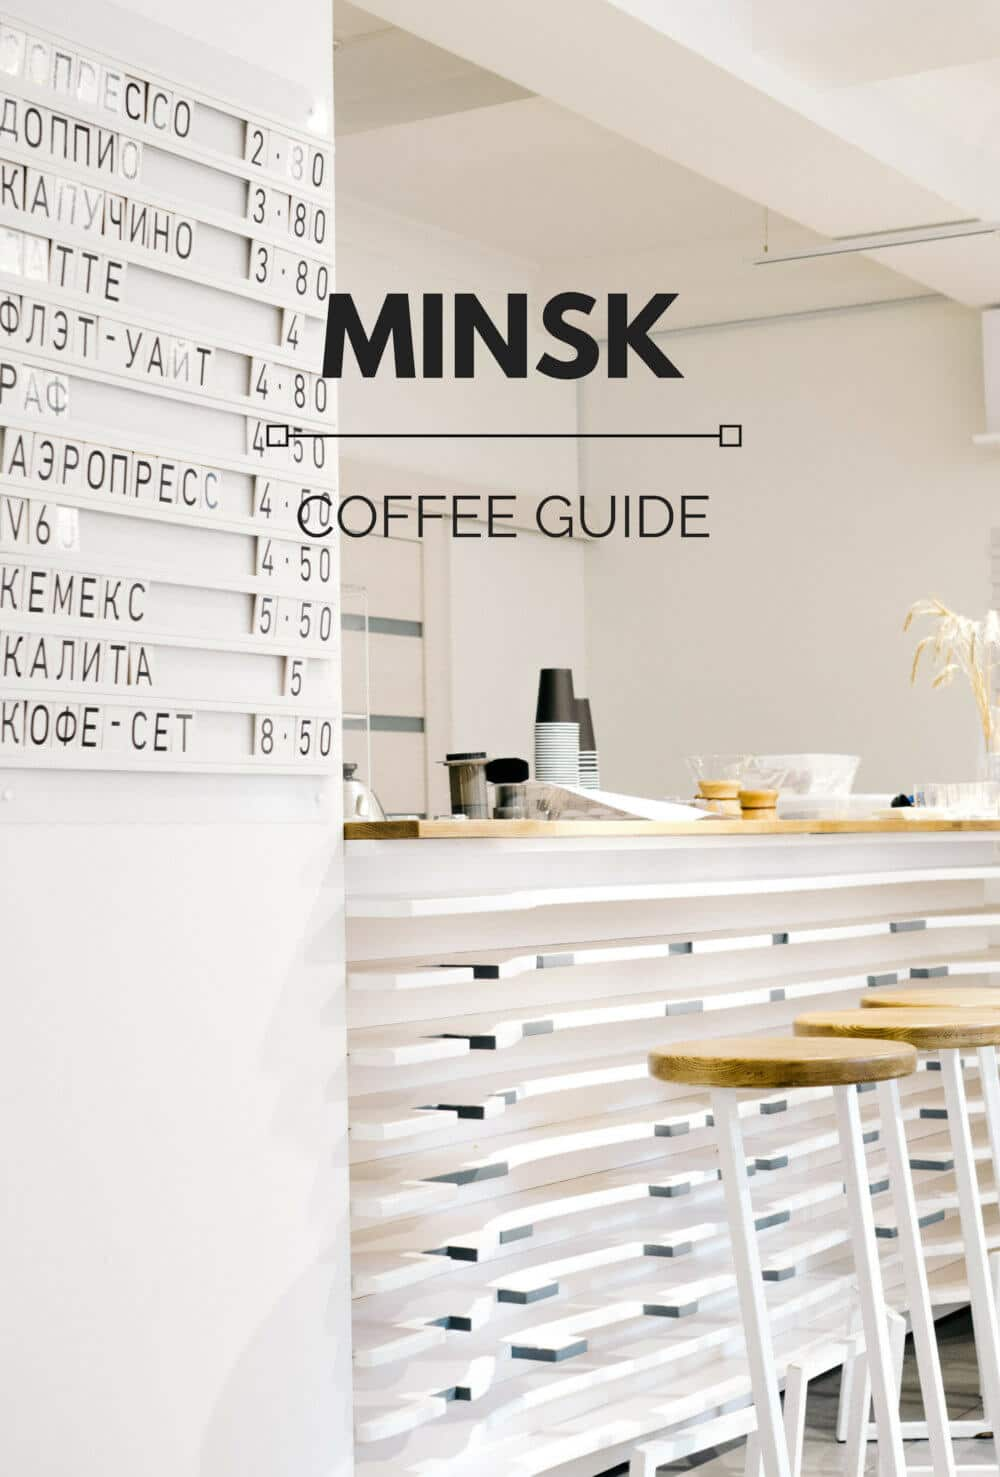 Minsk Coffee Guide